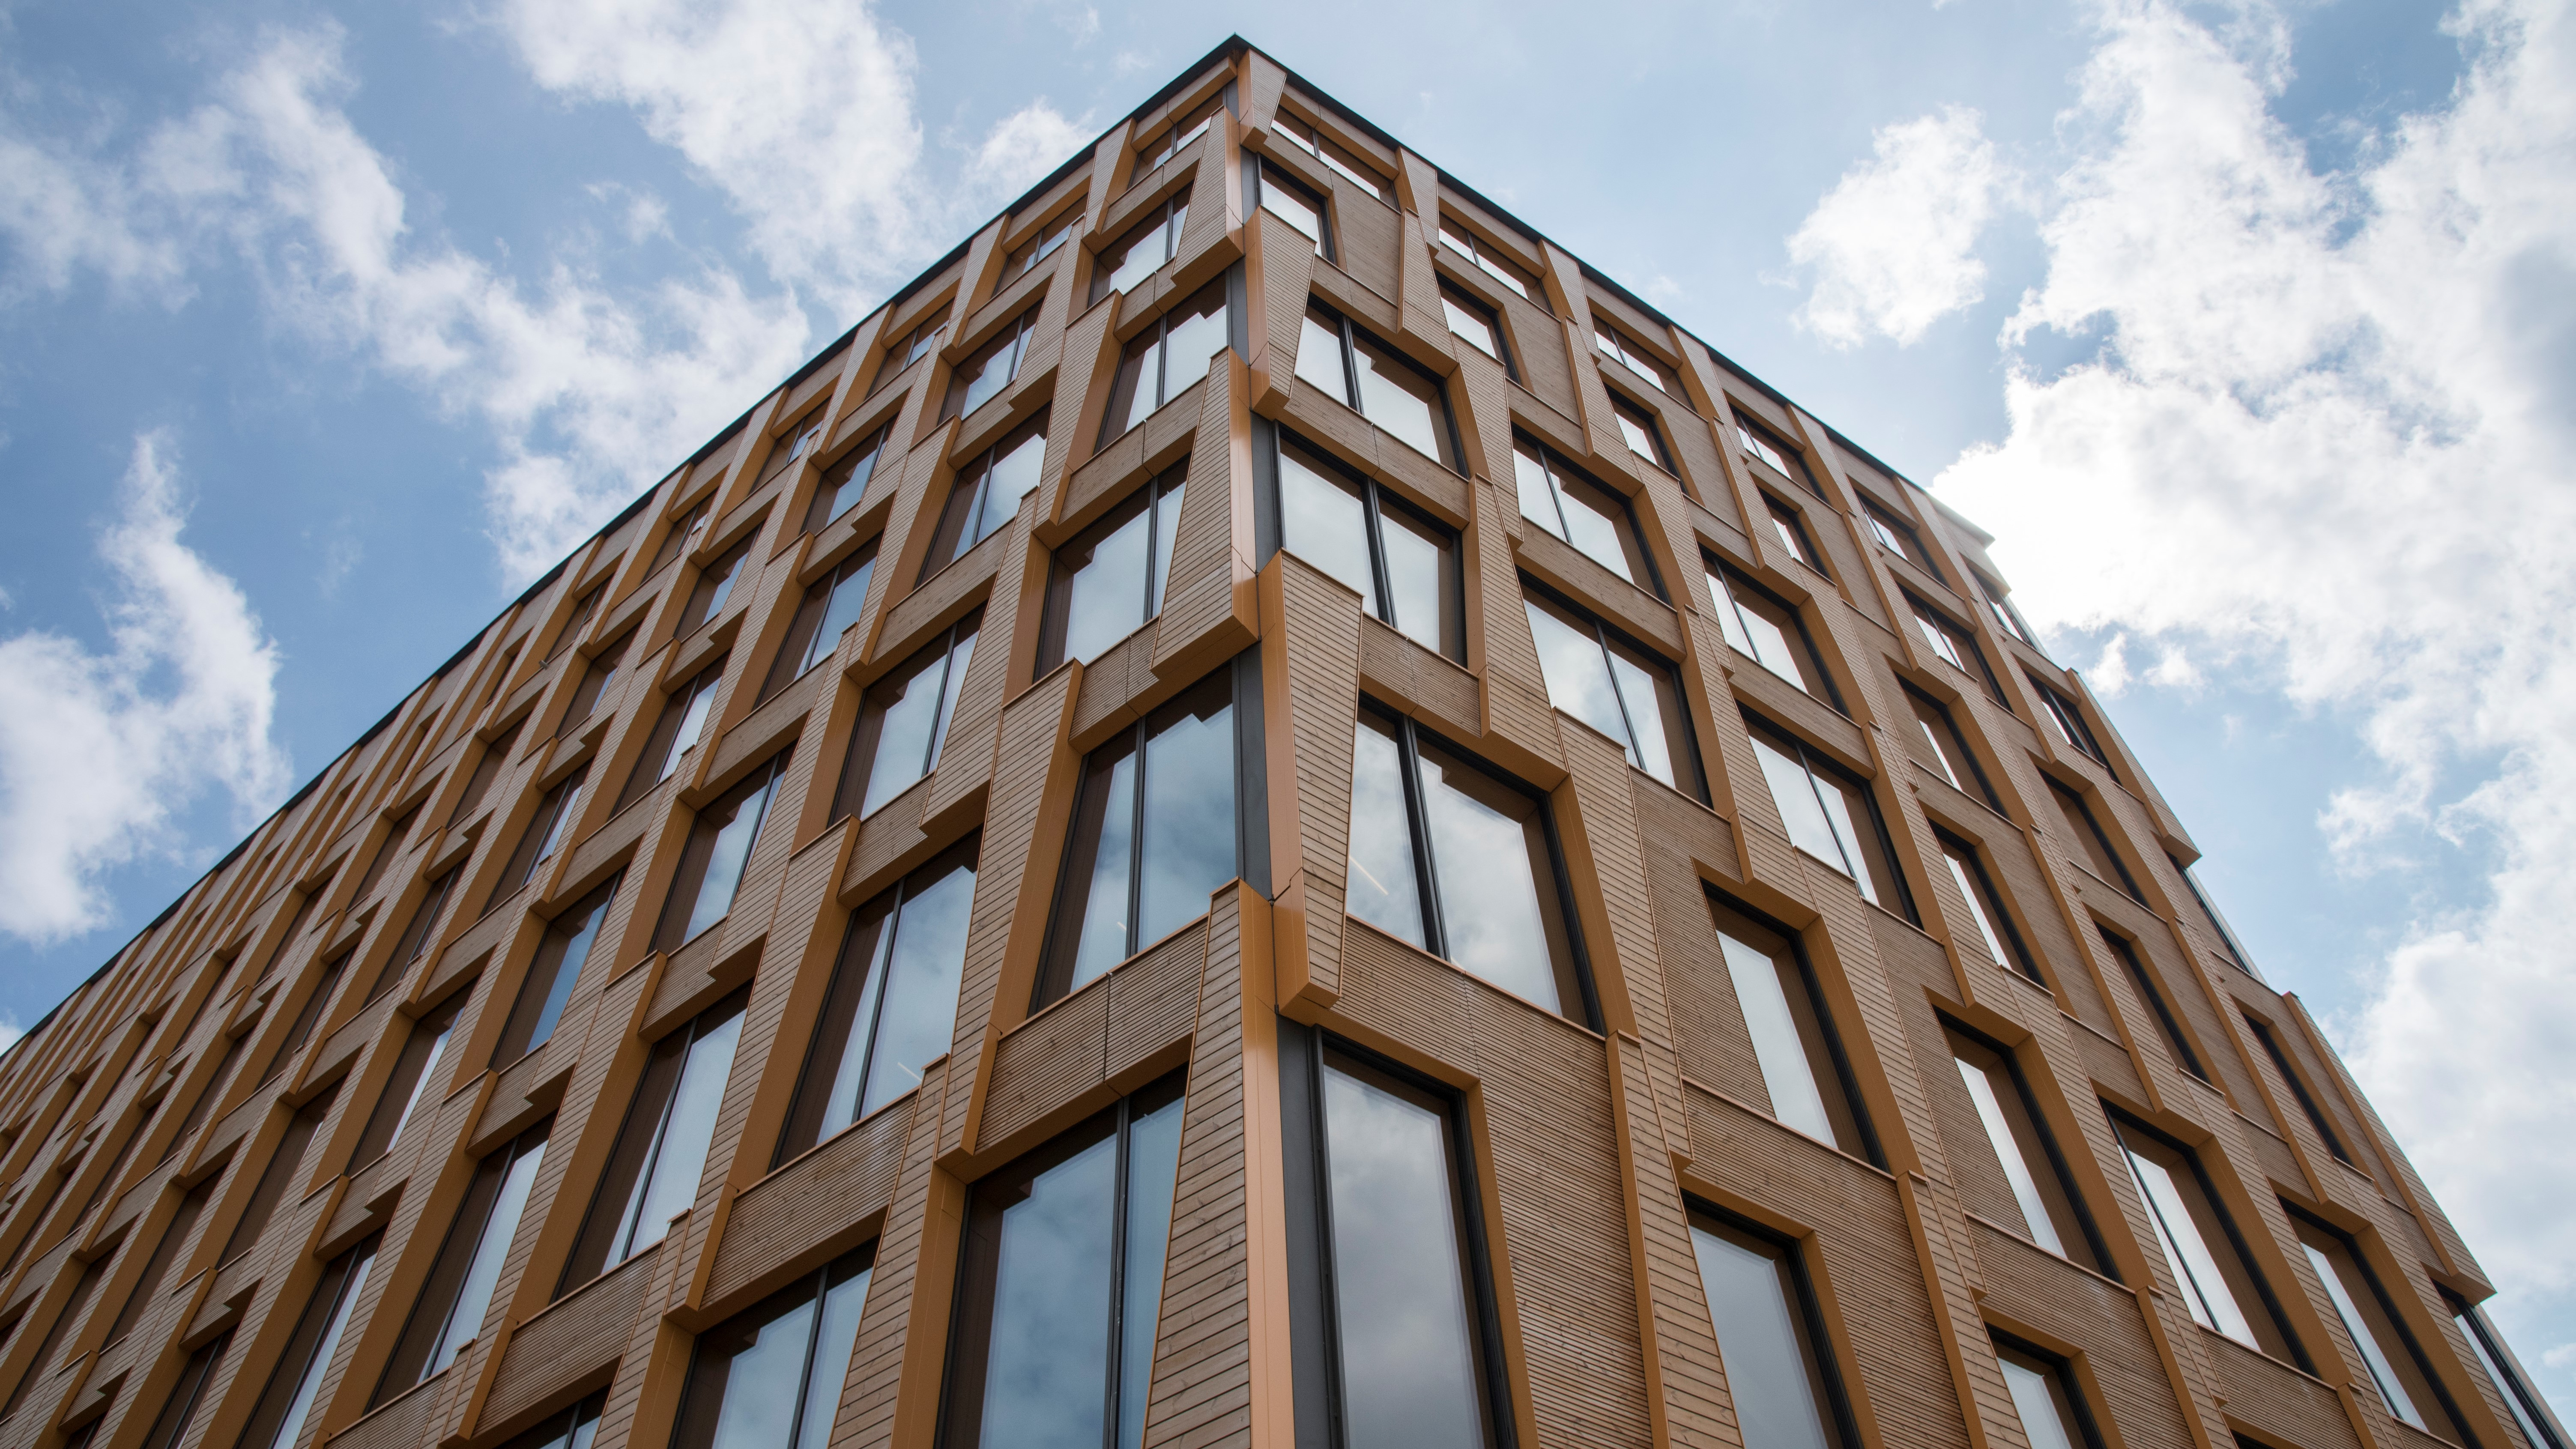 Why unitized element facades of aluminium work well on wooden buildings